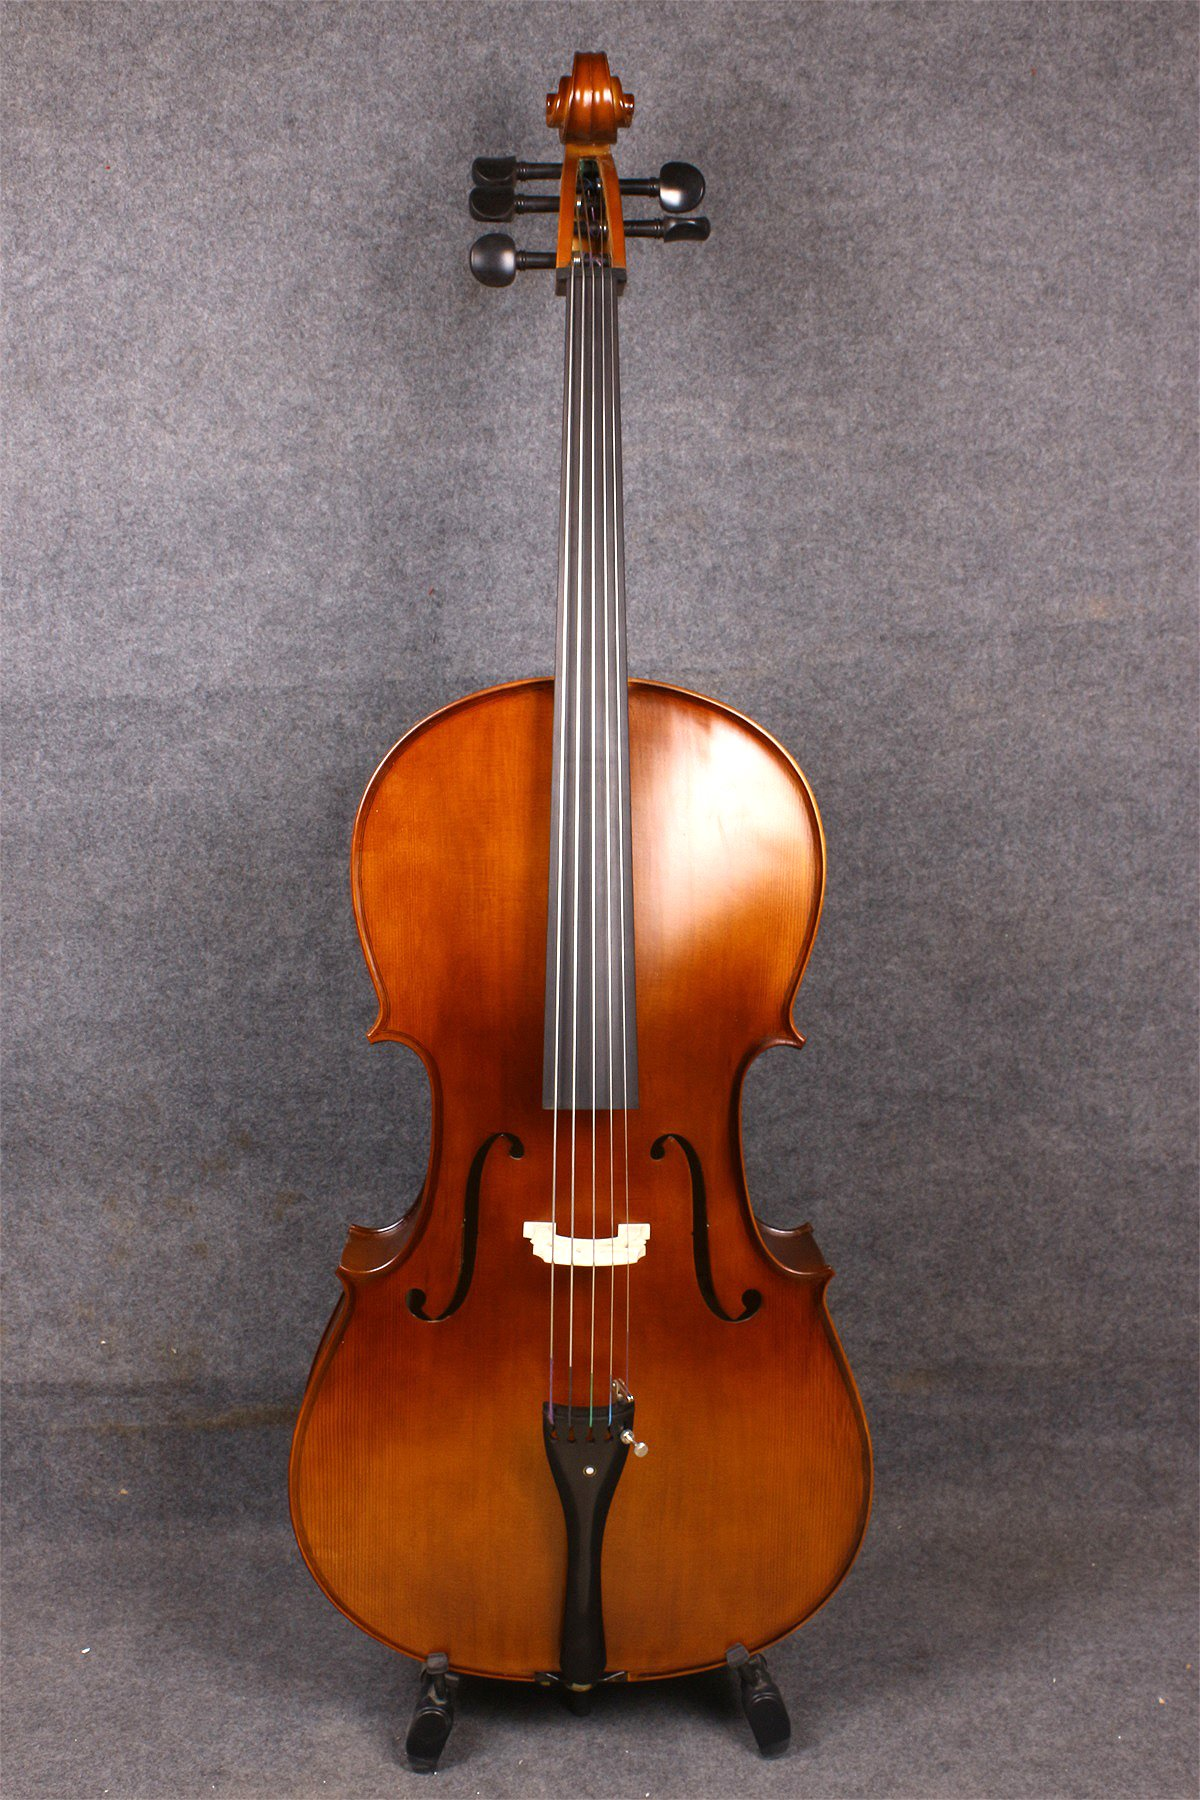 Yinfente 4/4 5 String Cello Acoustic Model Full size Spruce Maple wood Free Cello bow Bag Sweet Sound by yinfente (Image #4)